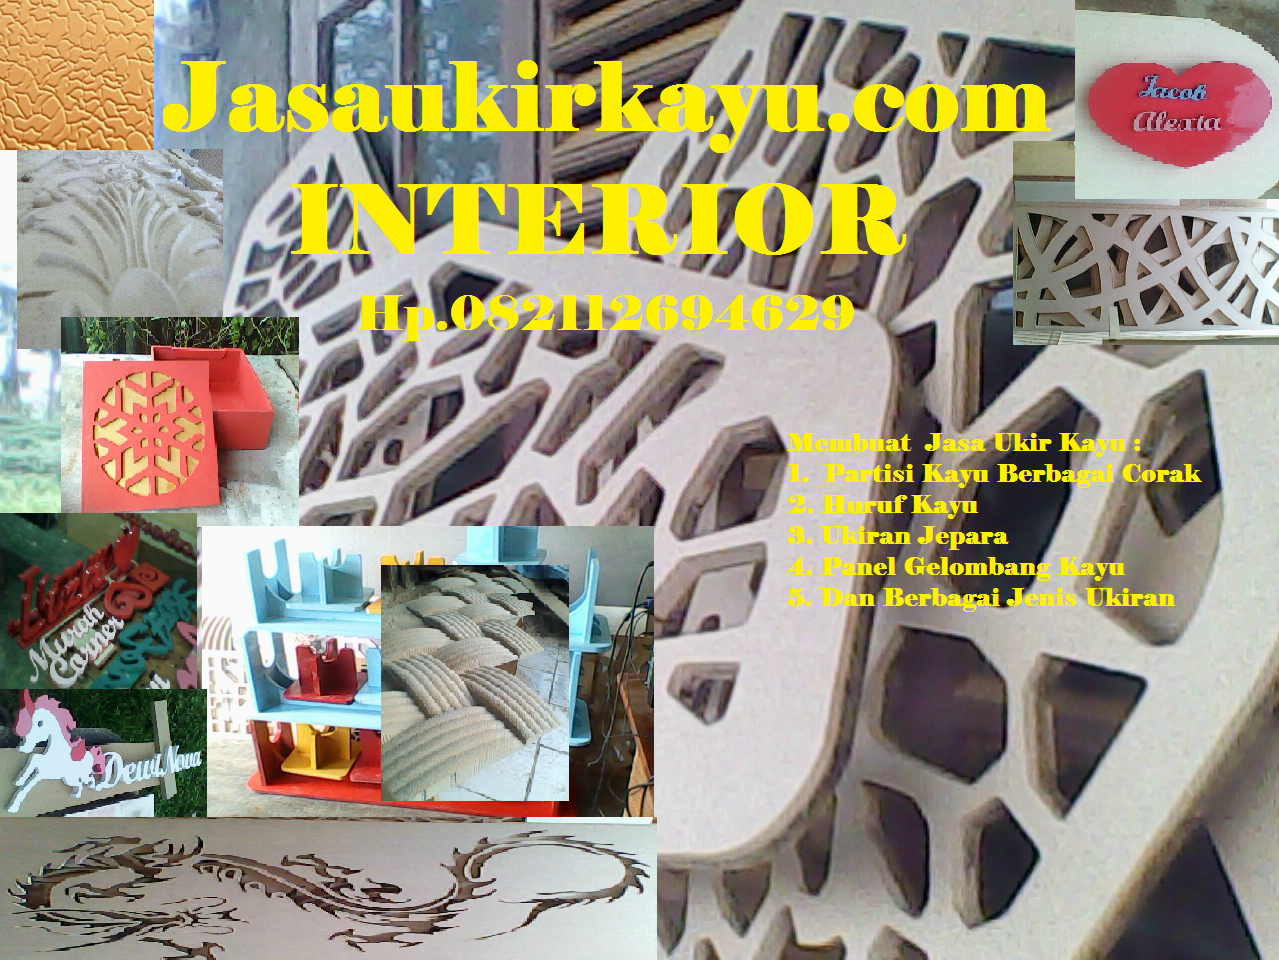 JASAUKIRKAYU.COM INDONESIA DESIGN CURVING